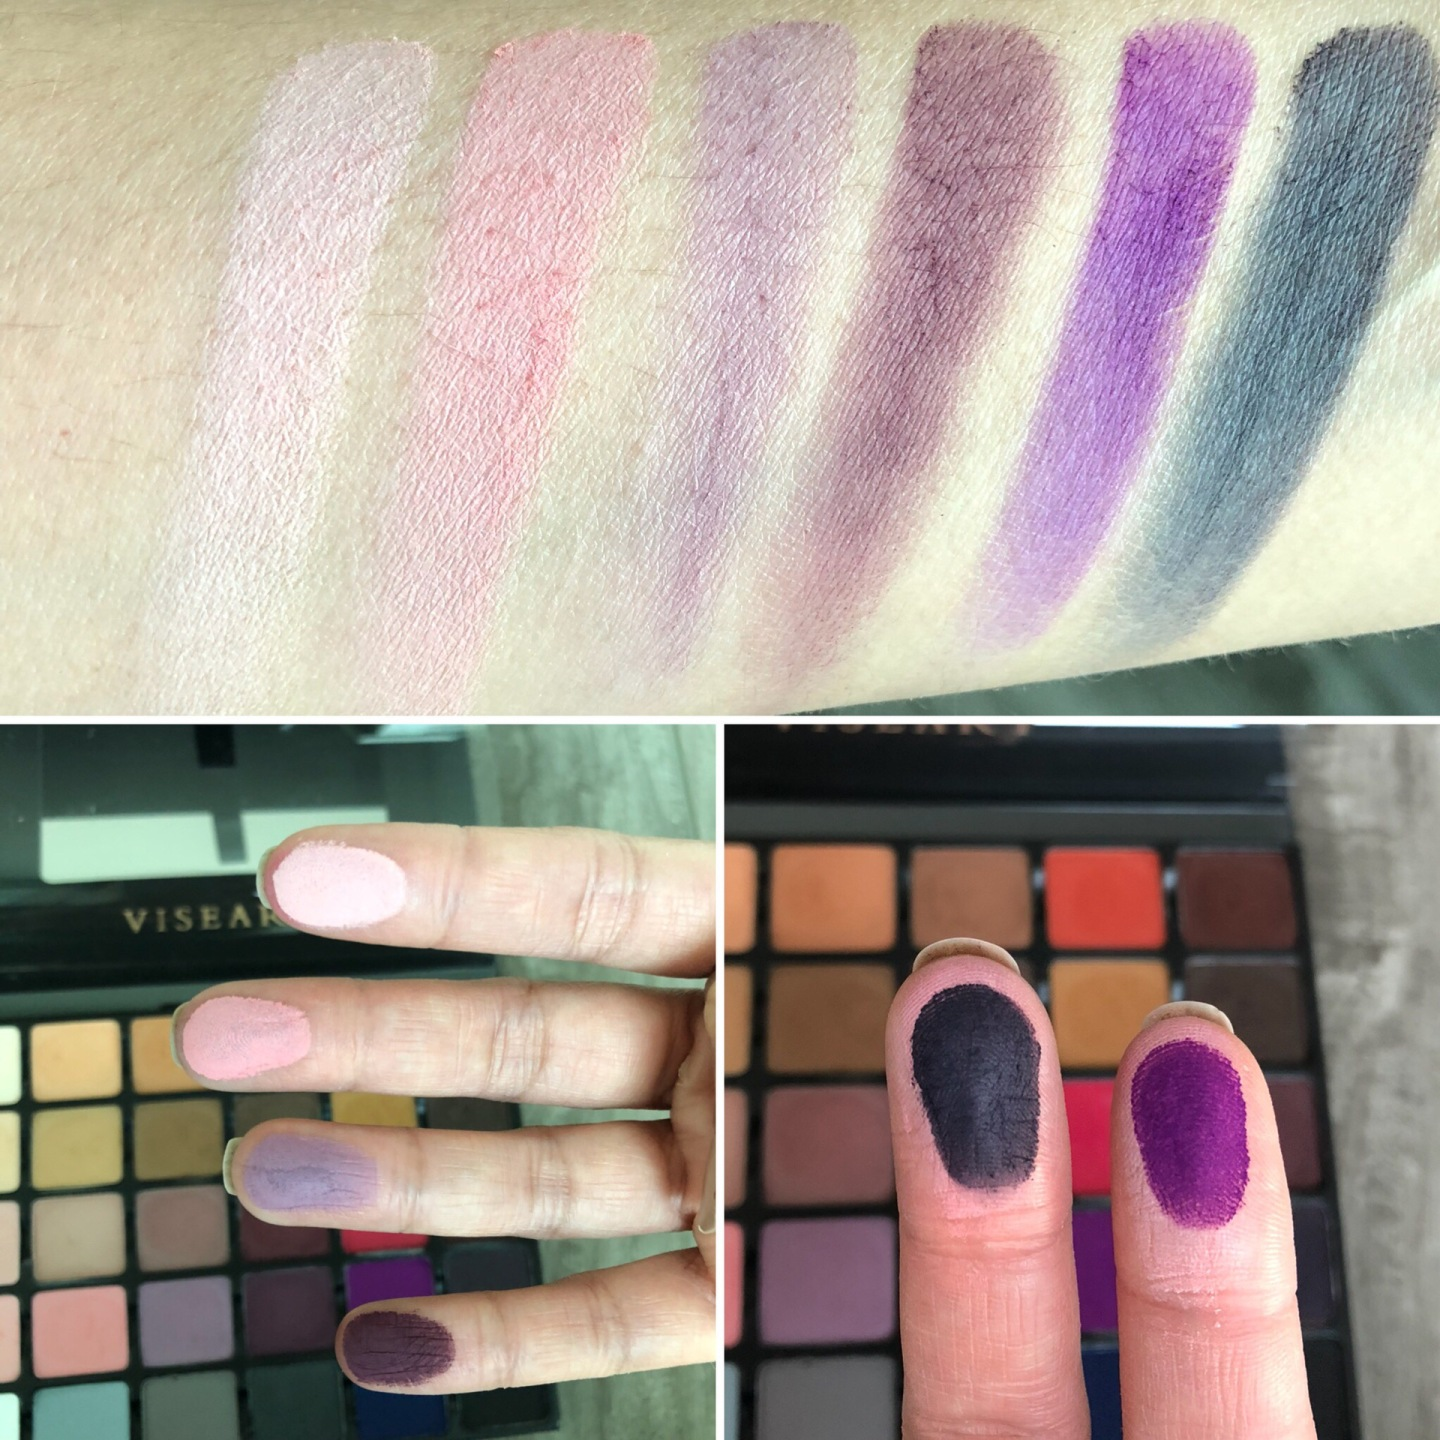 Viseart Grande Pro Volume 1 swatch